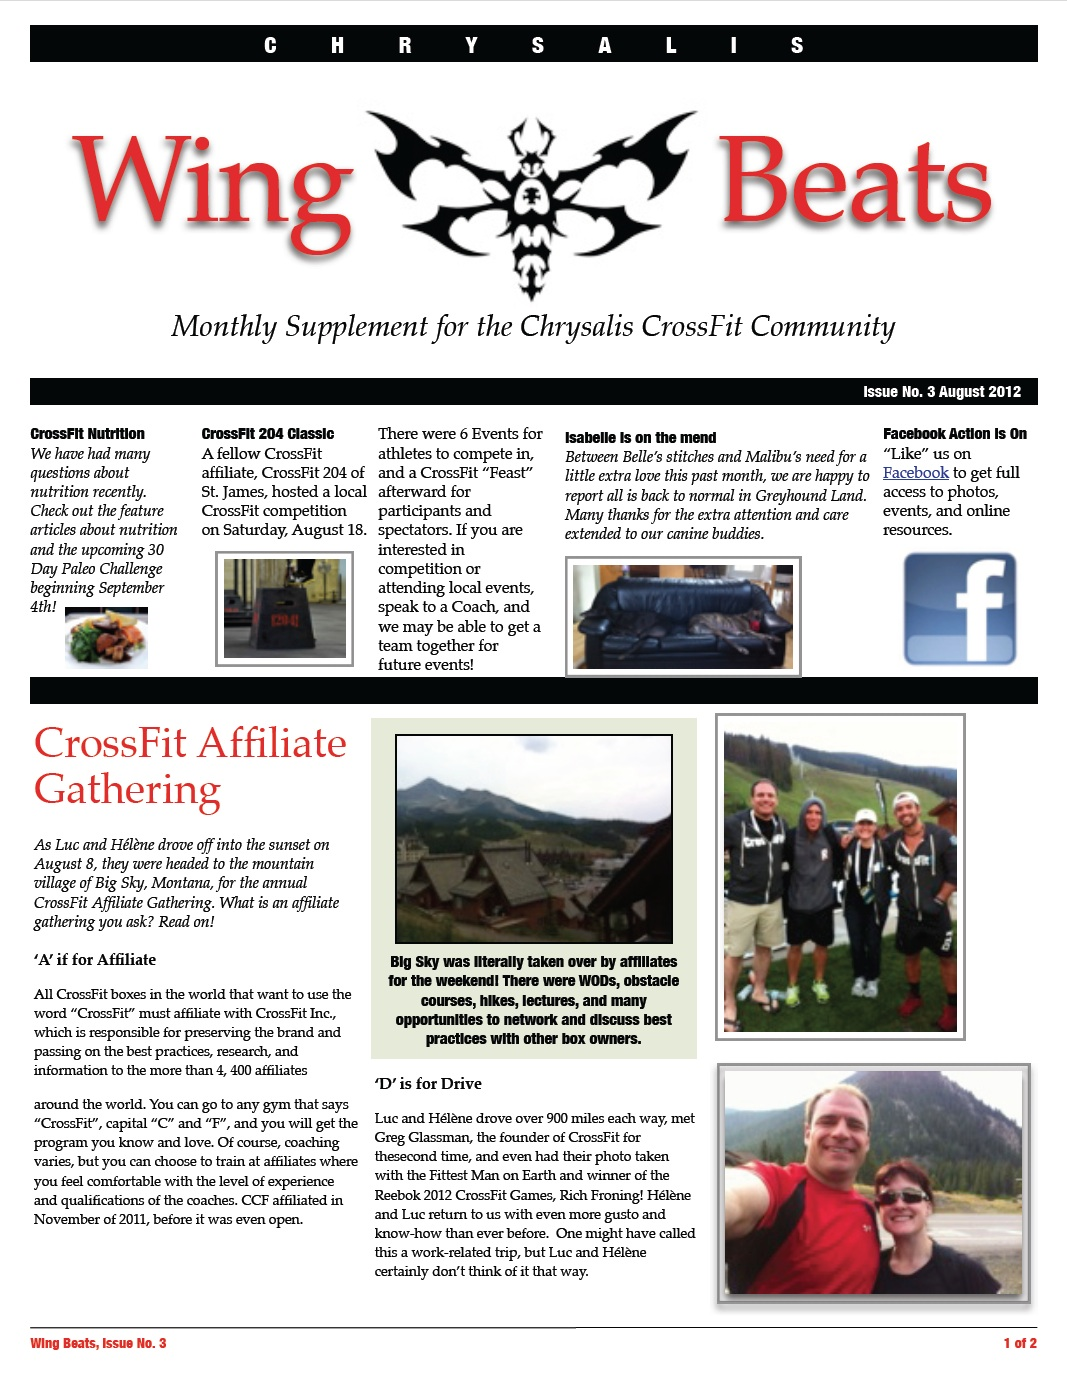 WingBeats Issue #4 - Aug 2012